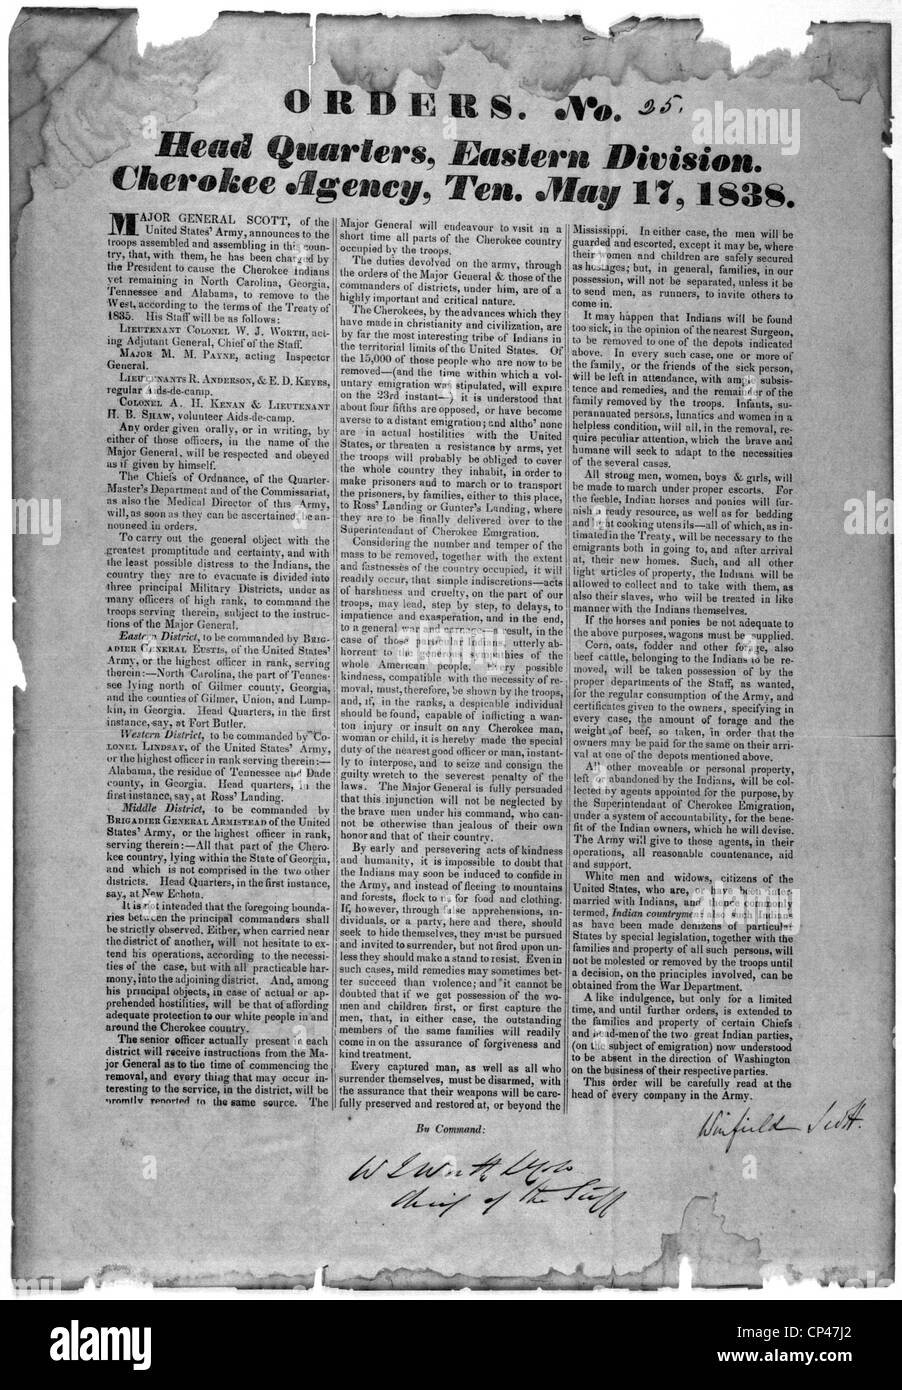 Indian Removal.  Bill of orders announces the US Army's enforcement of the Indian Removal Act against Cherokee - Stock Image